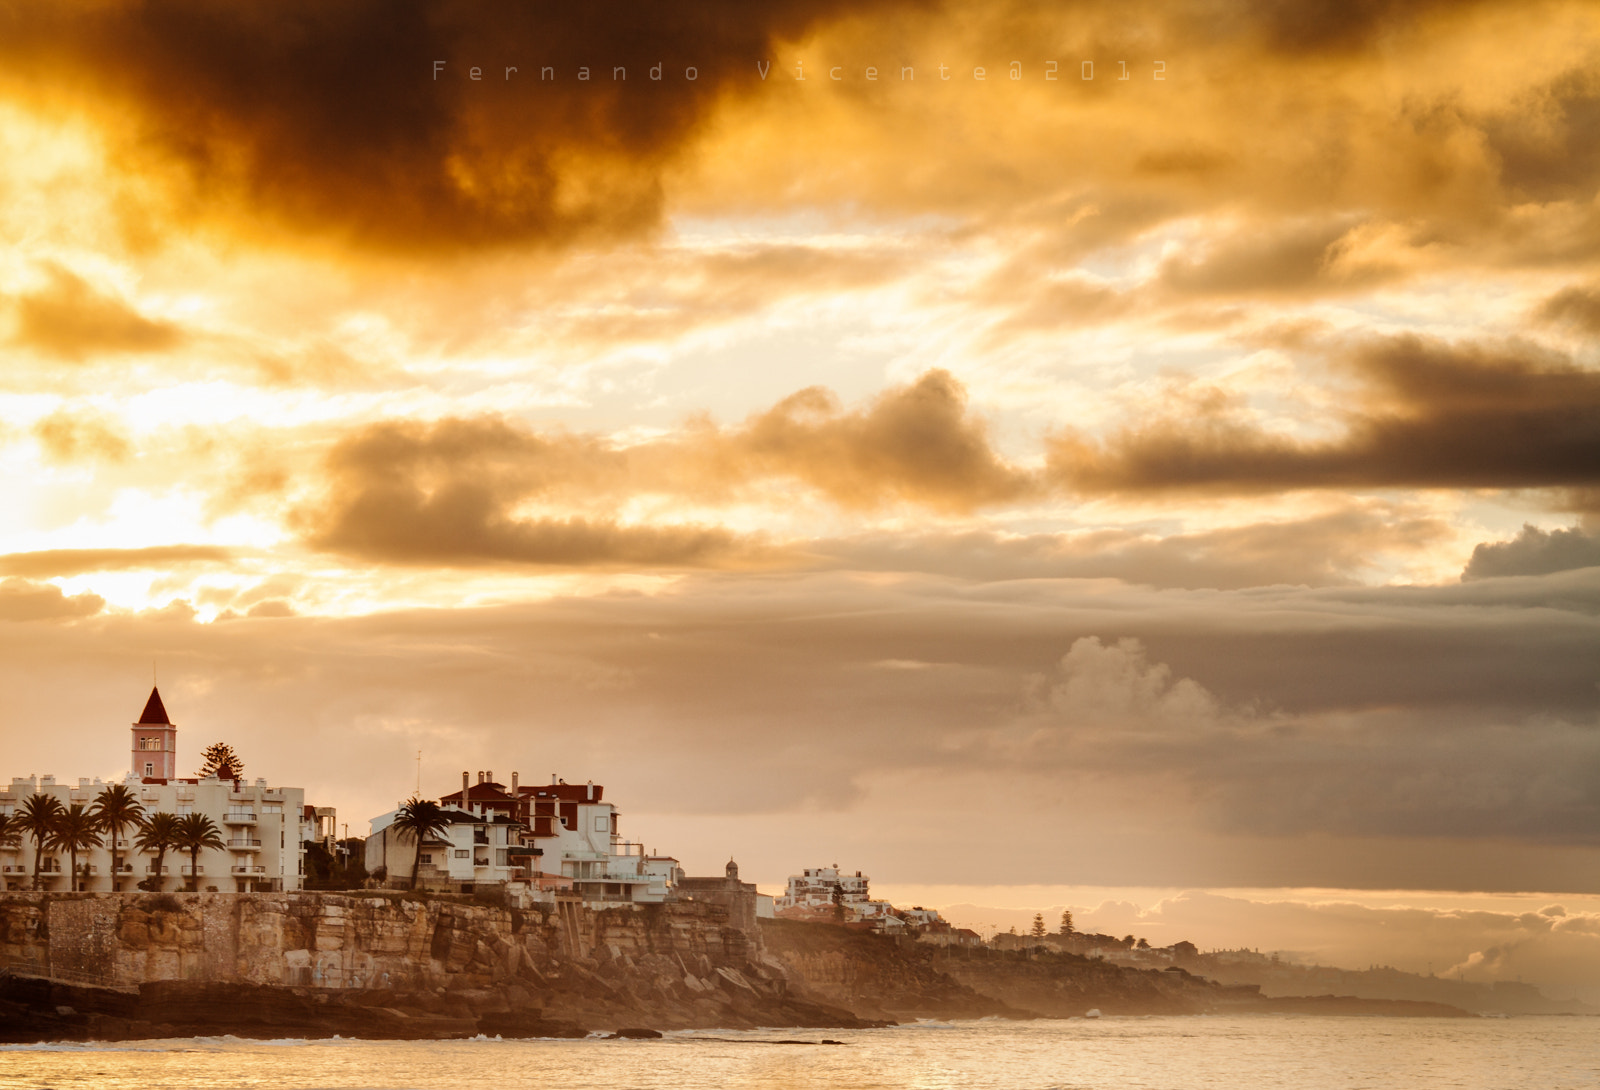 Photograph After the Storm by Fernando Vicente on 500px